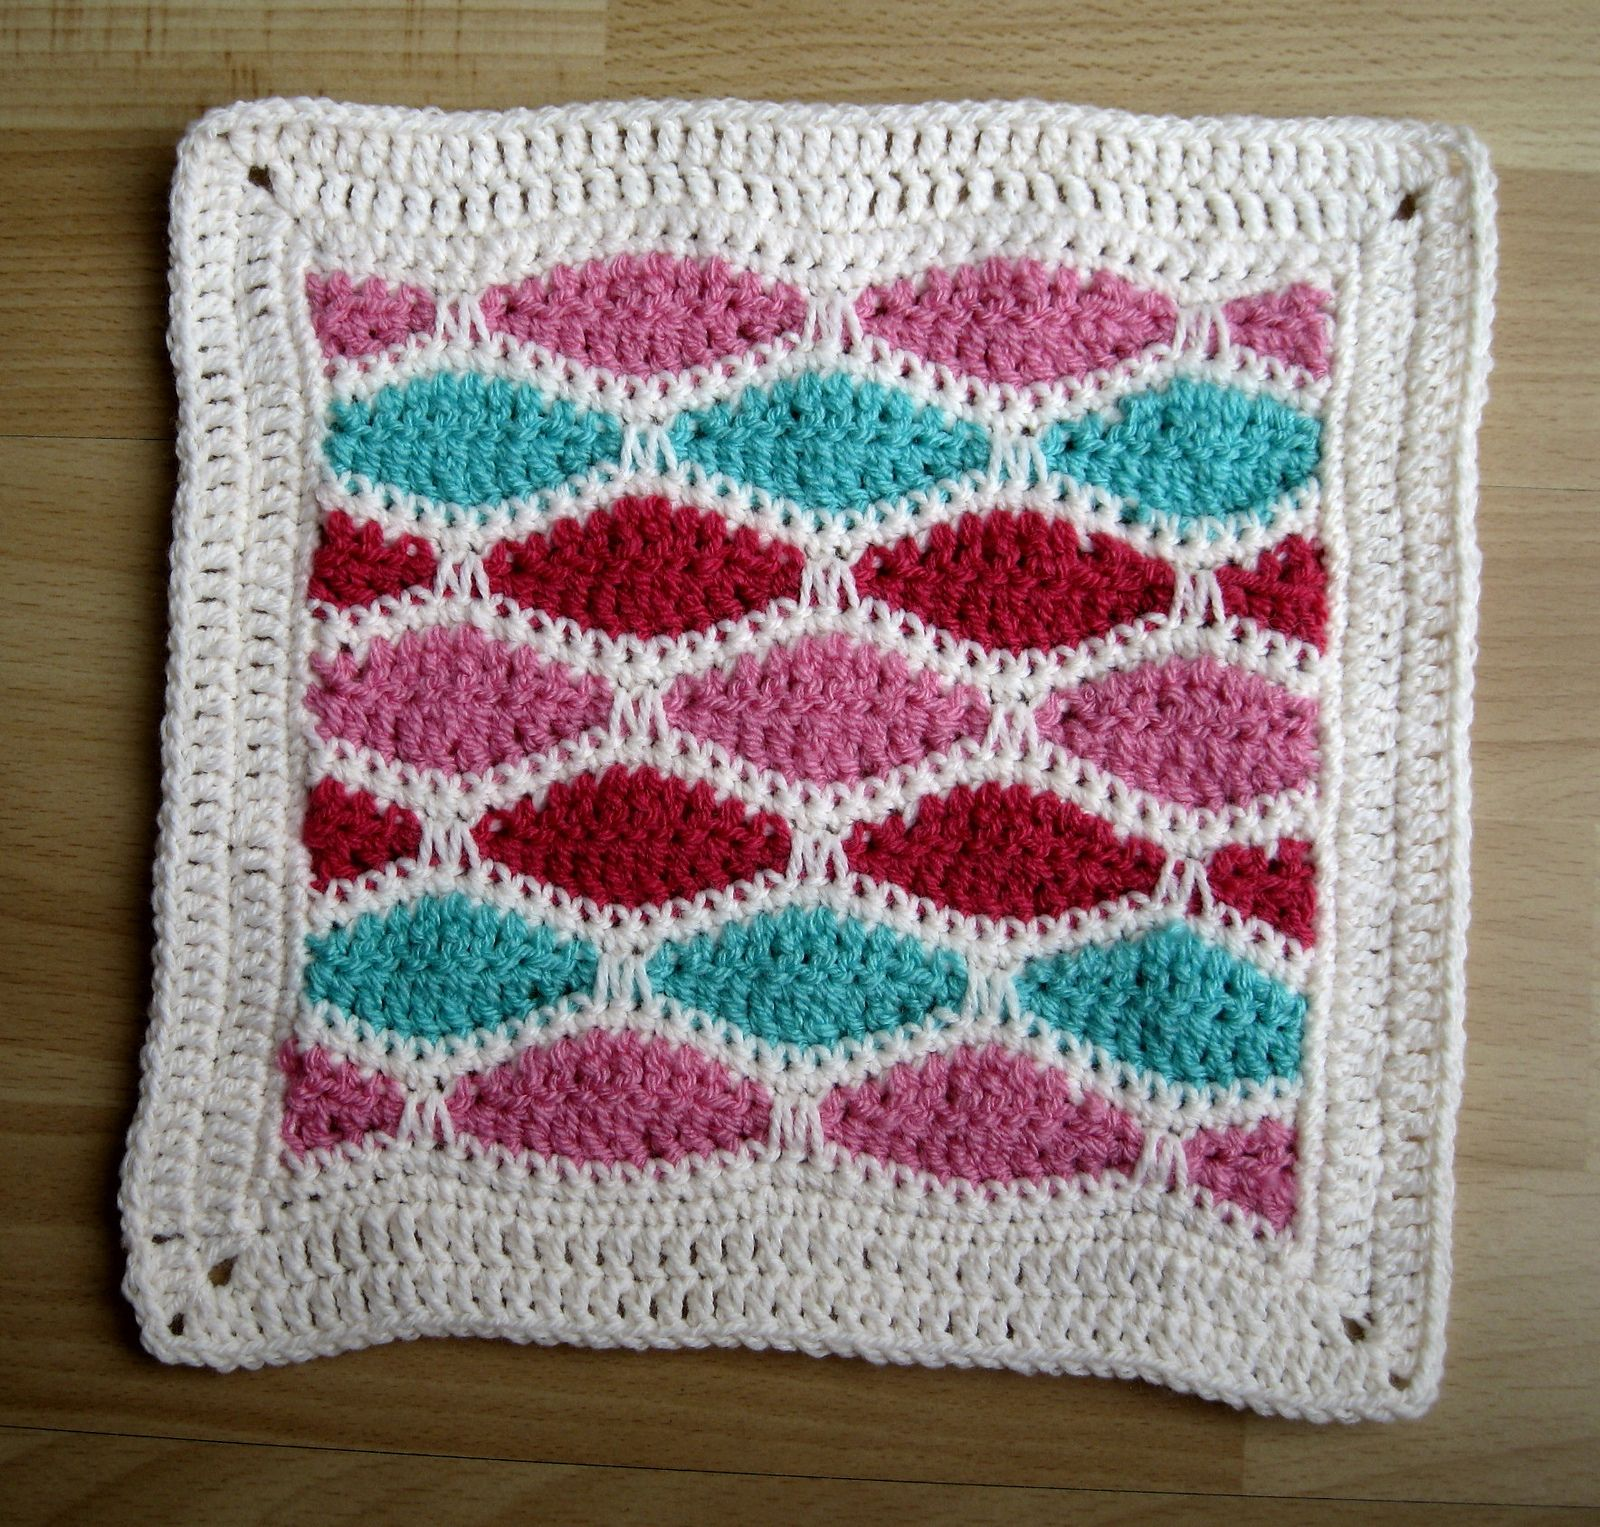 Ravelry: Stained Glass Square - 12\